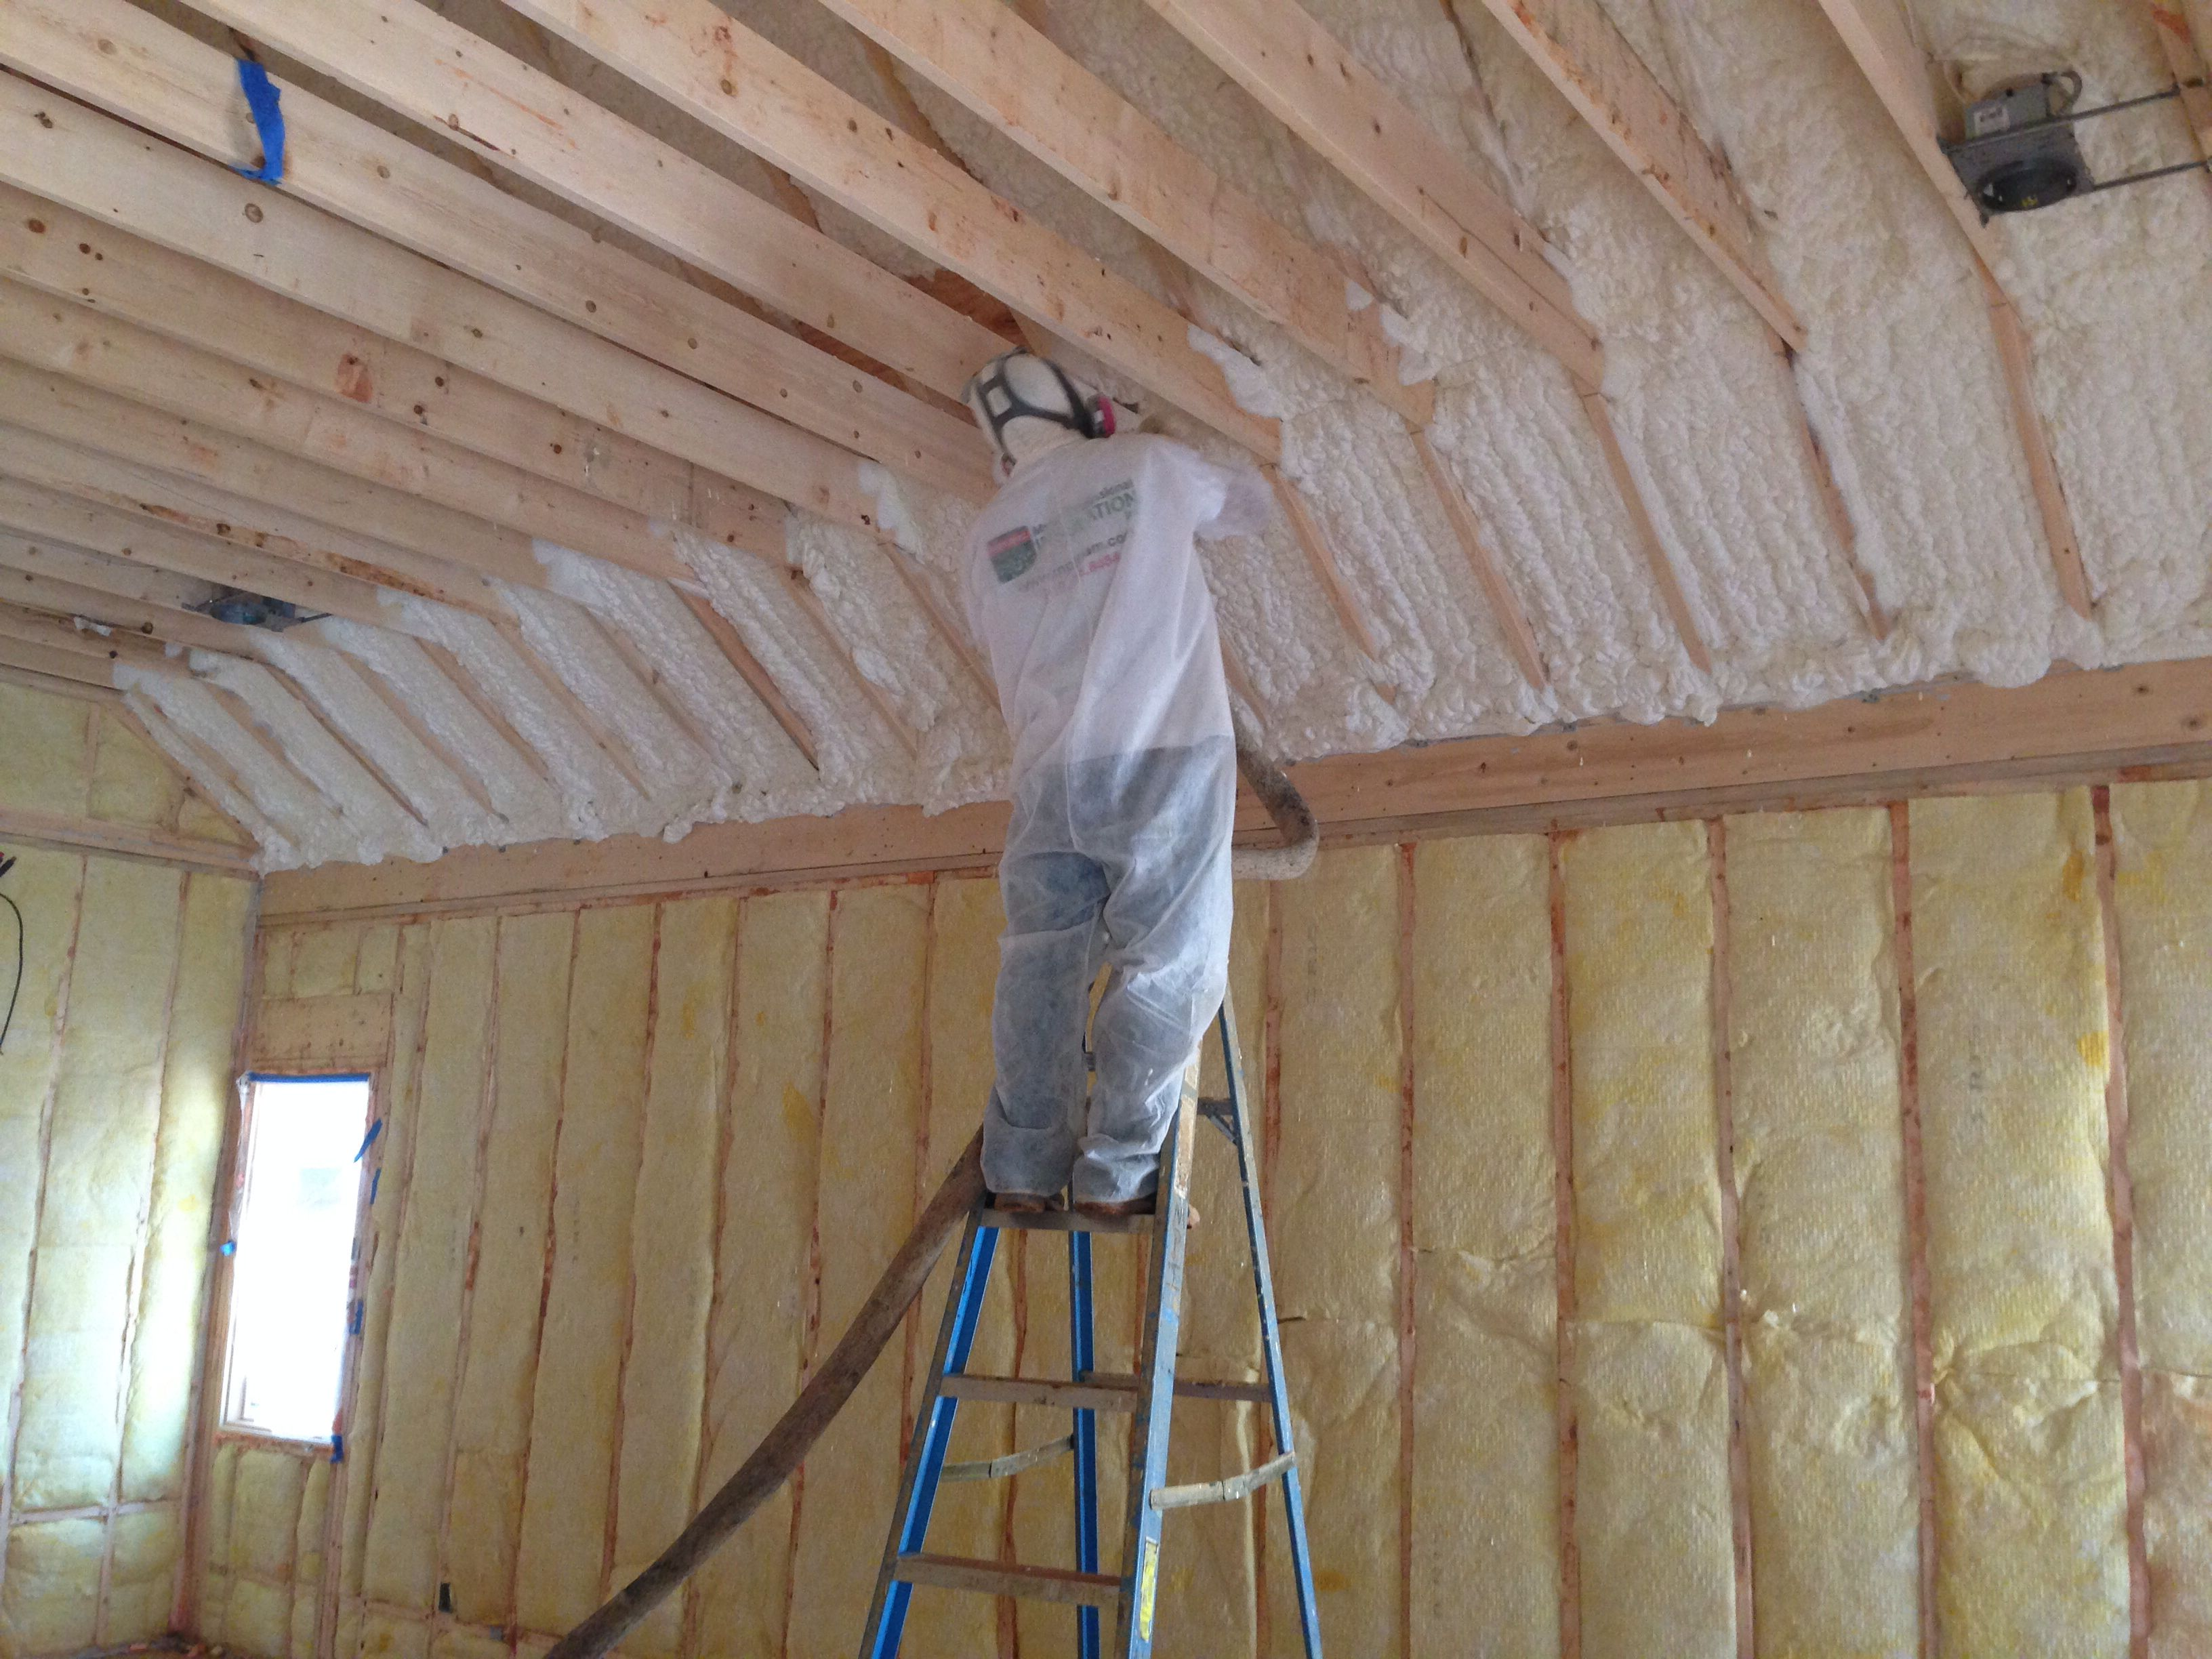 Hybrid Insulation With Fiberglass On The Exterior Walls And Spray